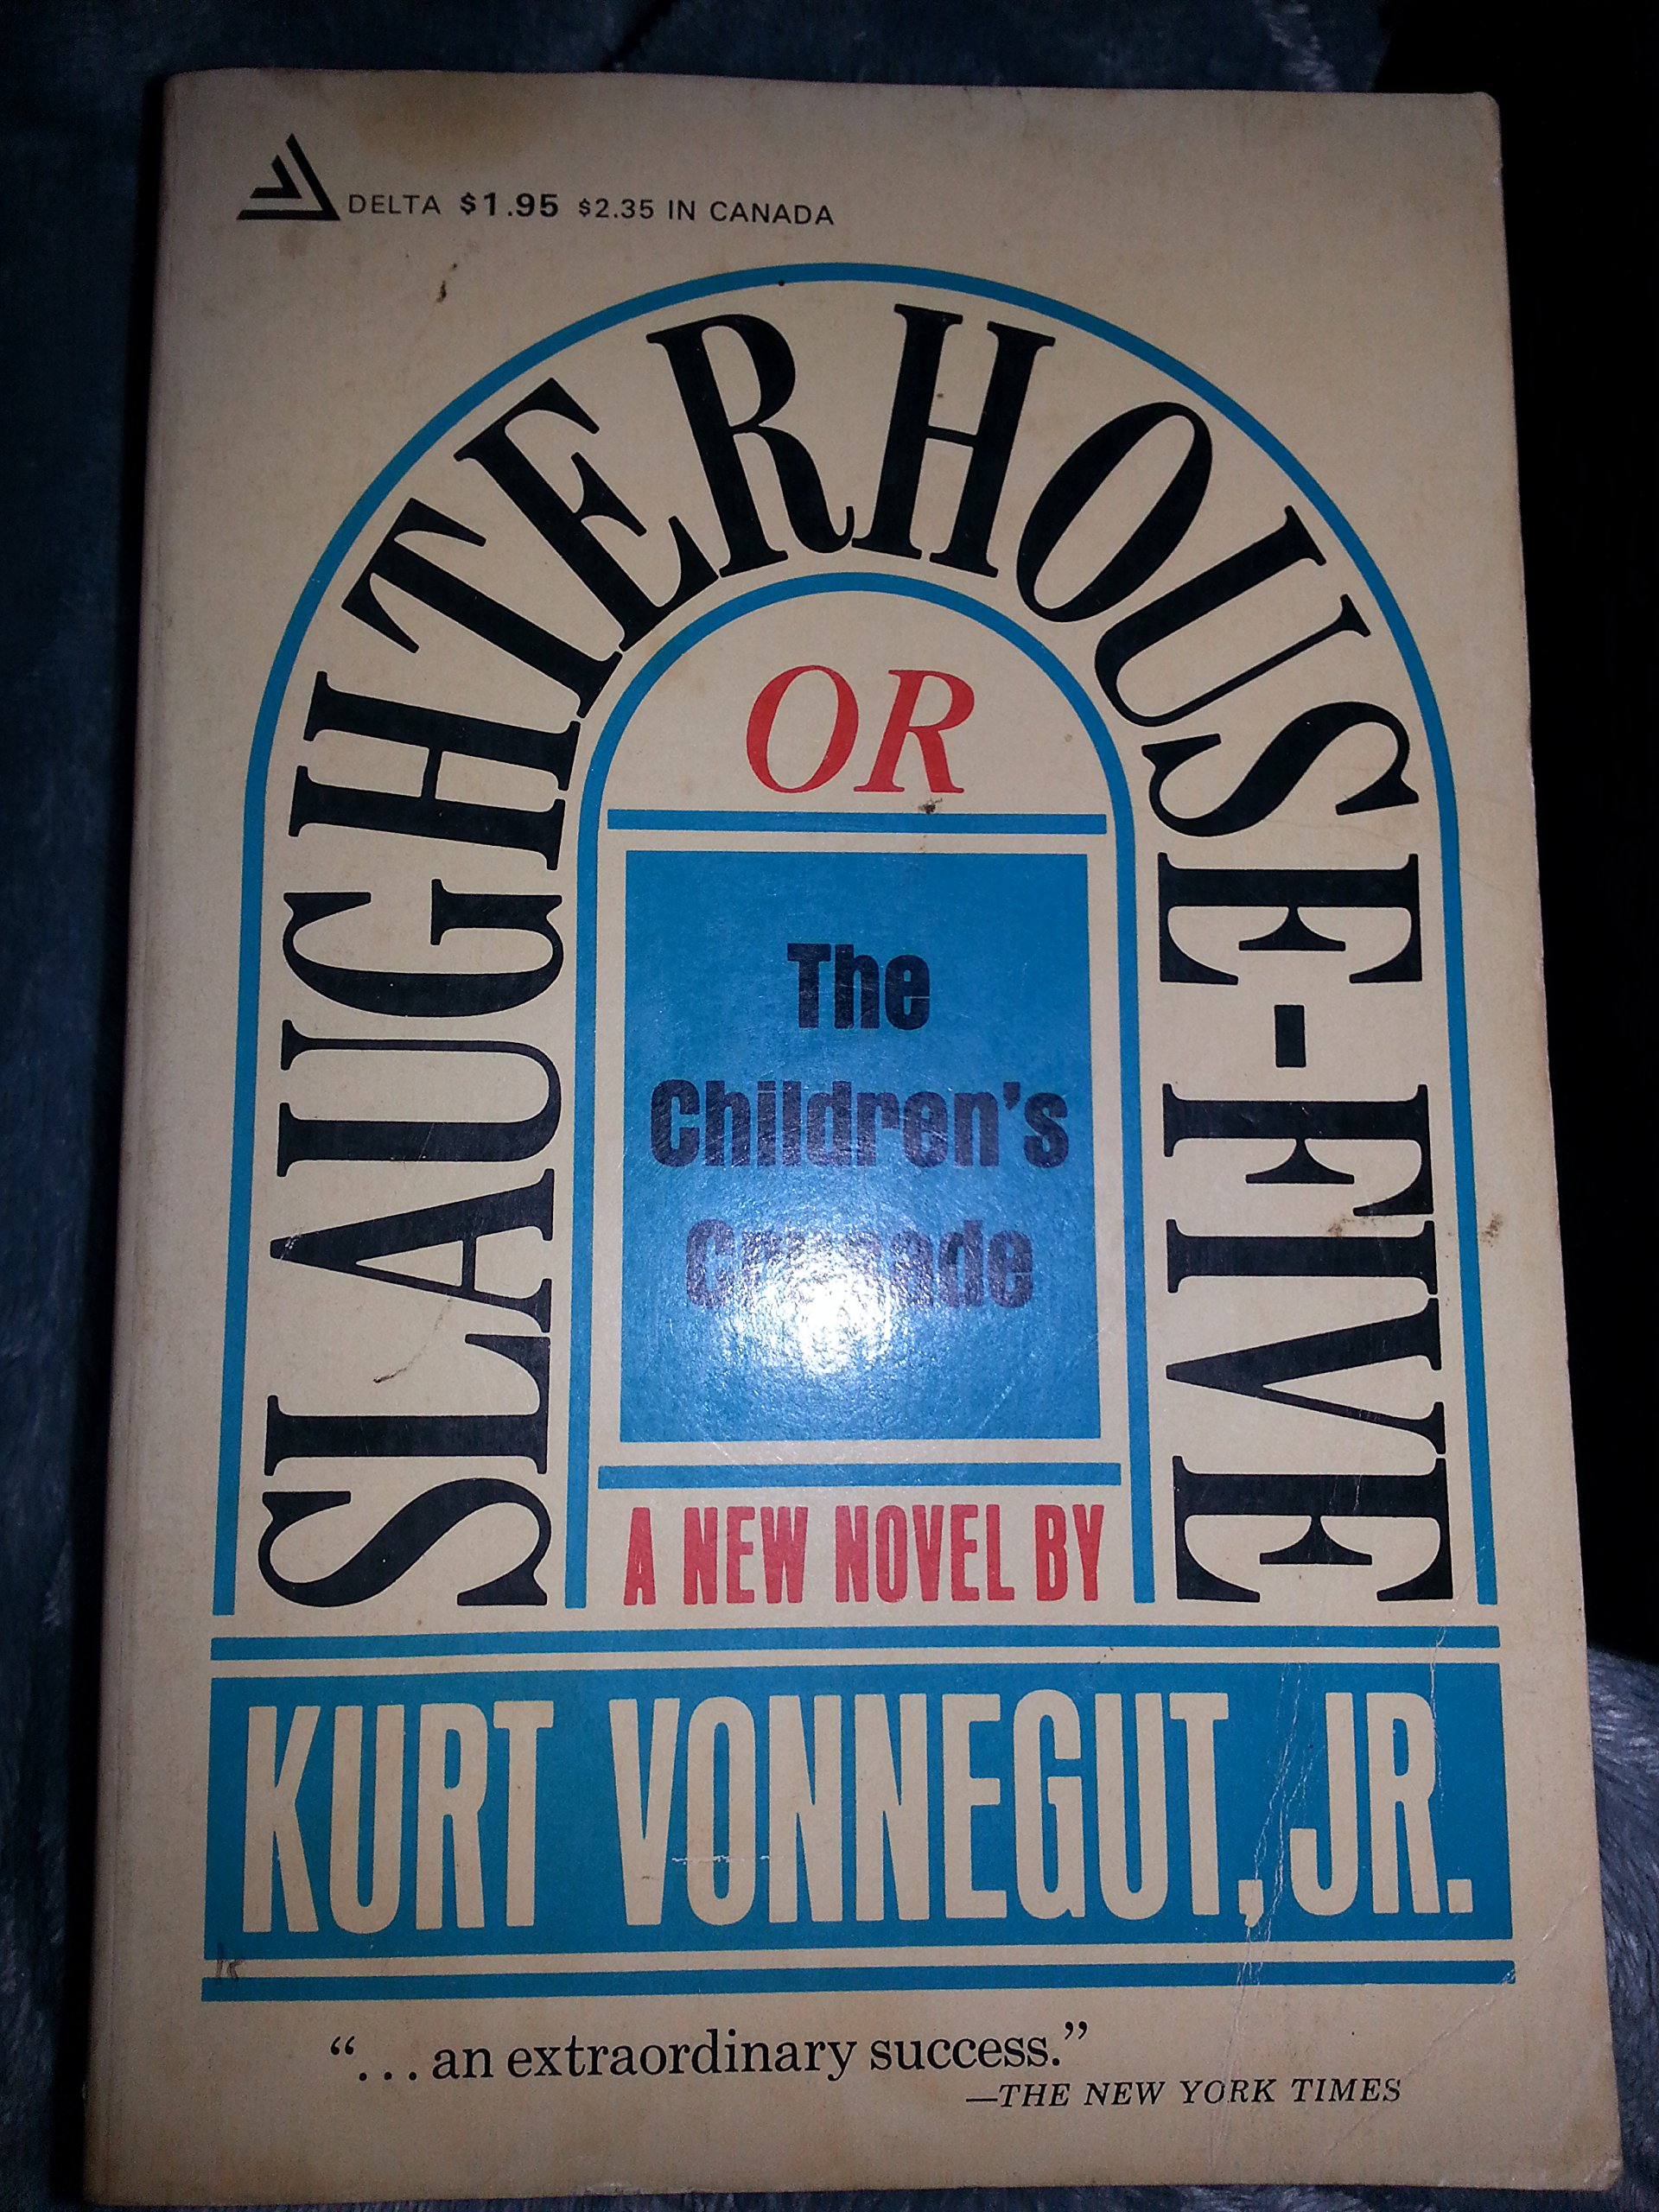 Slaughterhouse-five or the Children's Crusade: a Dirty Dance with Death, vonnegut Jr., Kurt